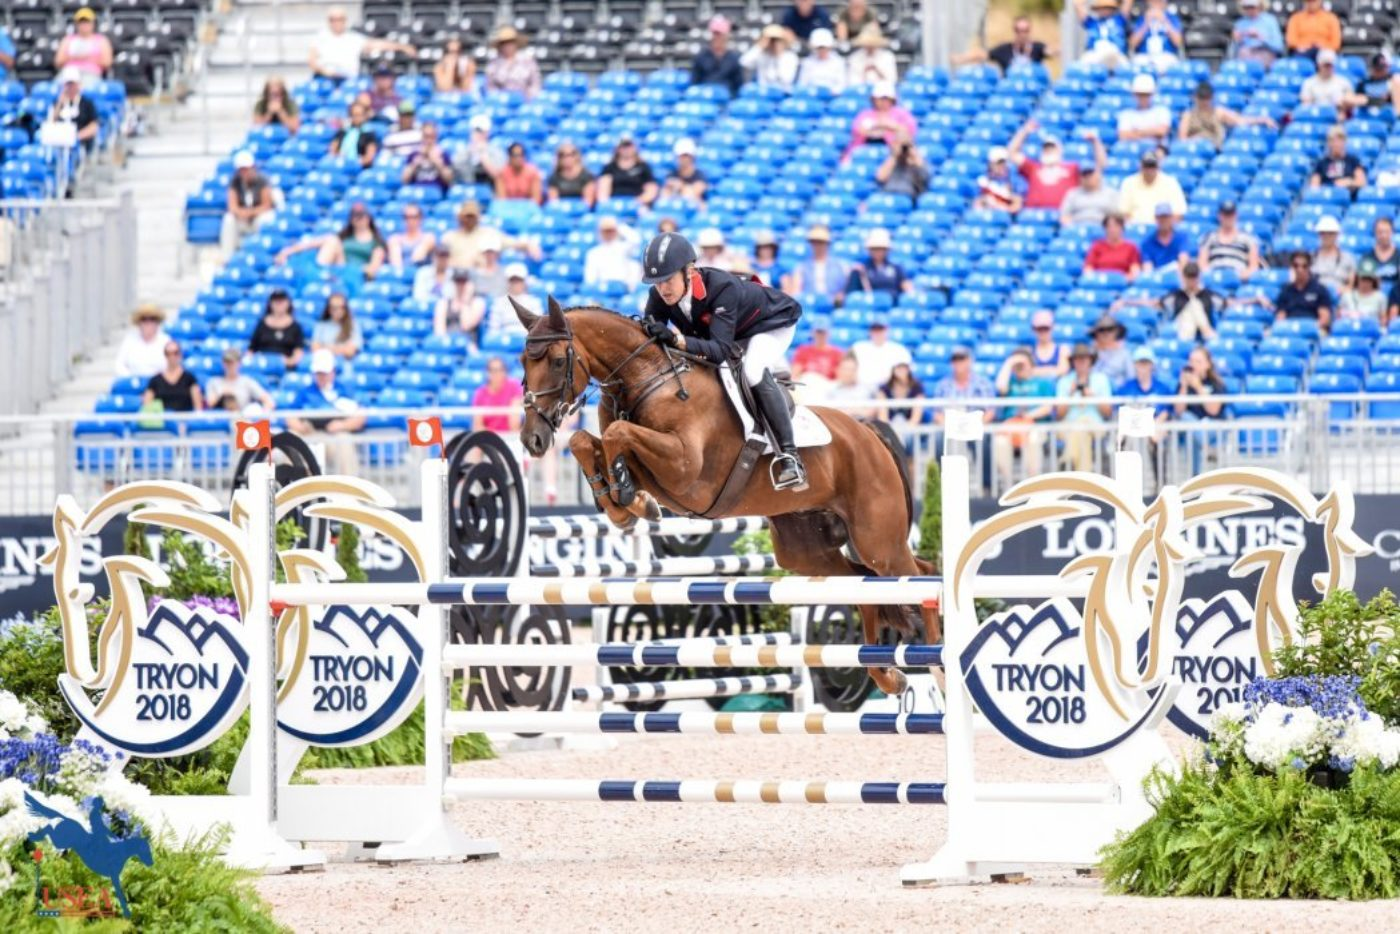 9th - Kristina Cook and Billy the Red (GBR)